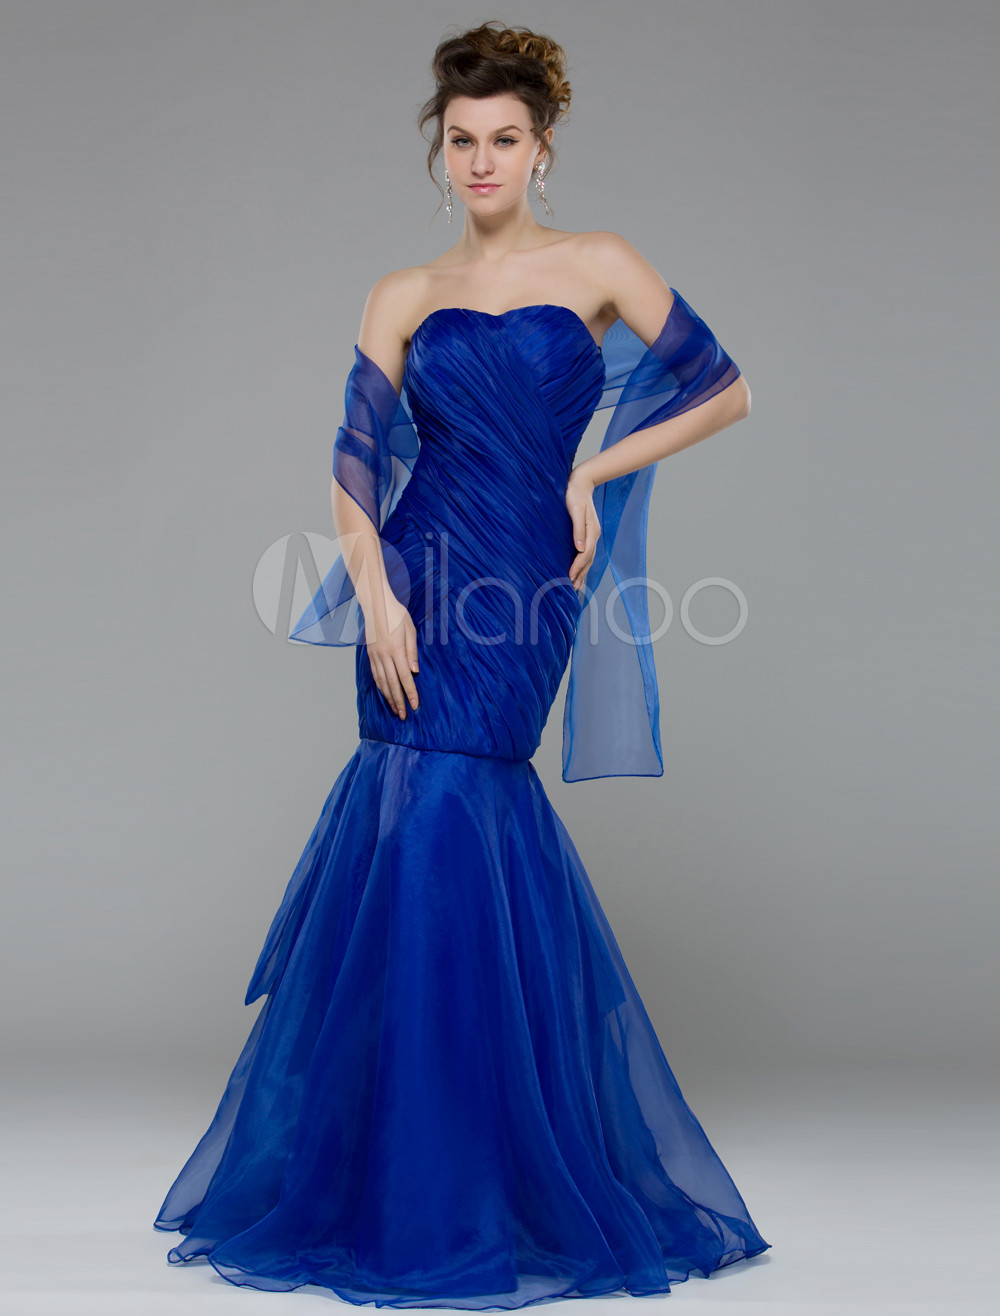 Mermaid Royal Blue Organza Prom Dress with Strapless Design